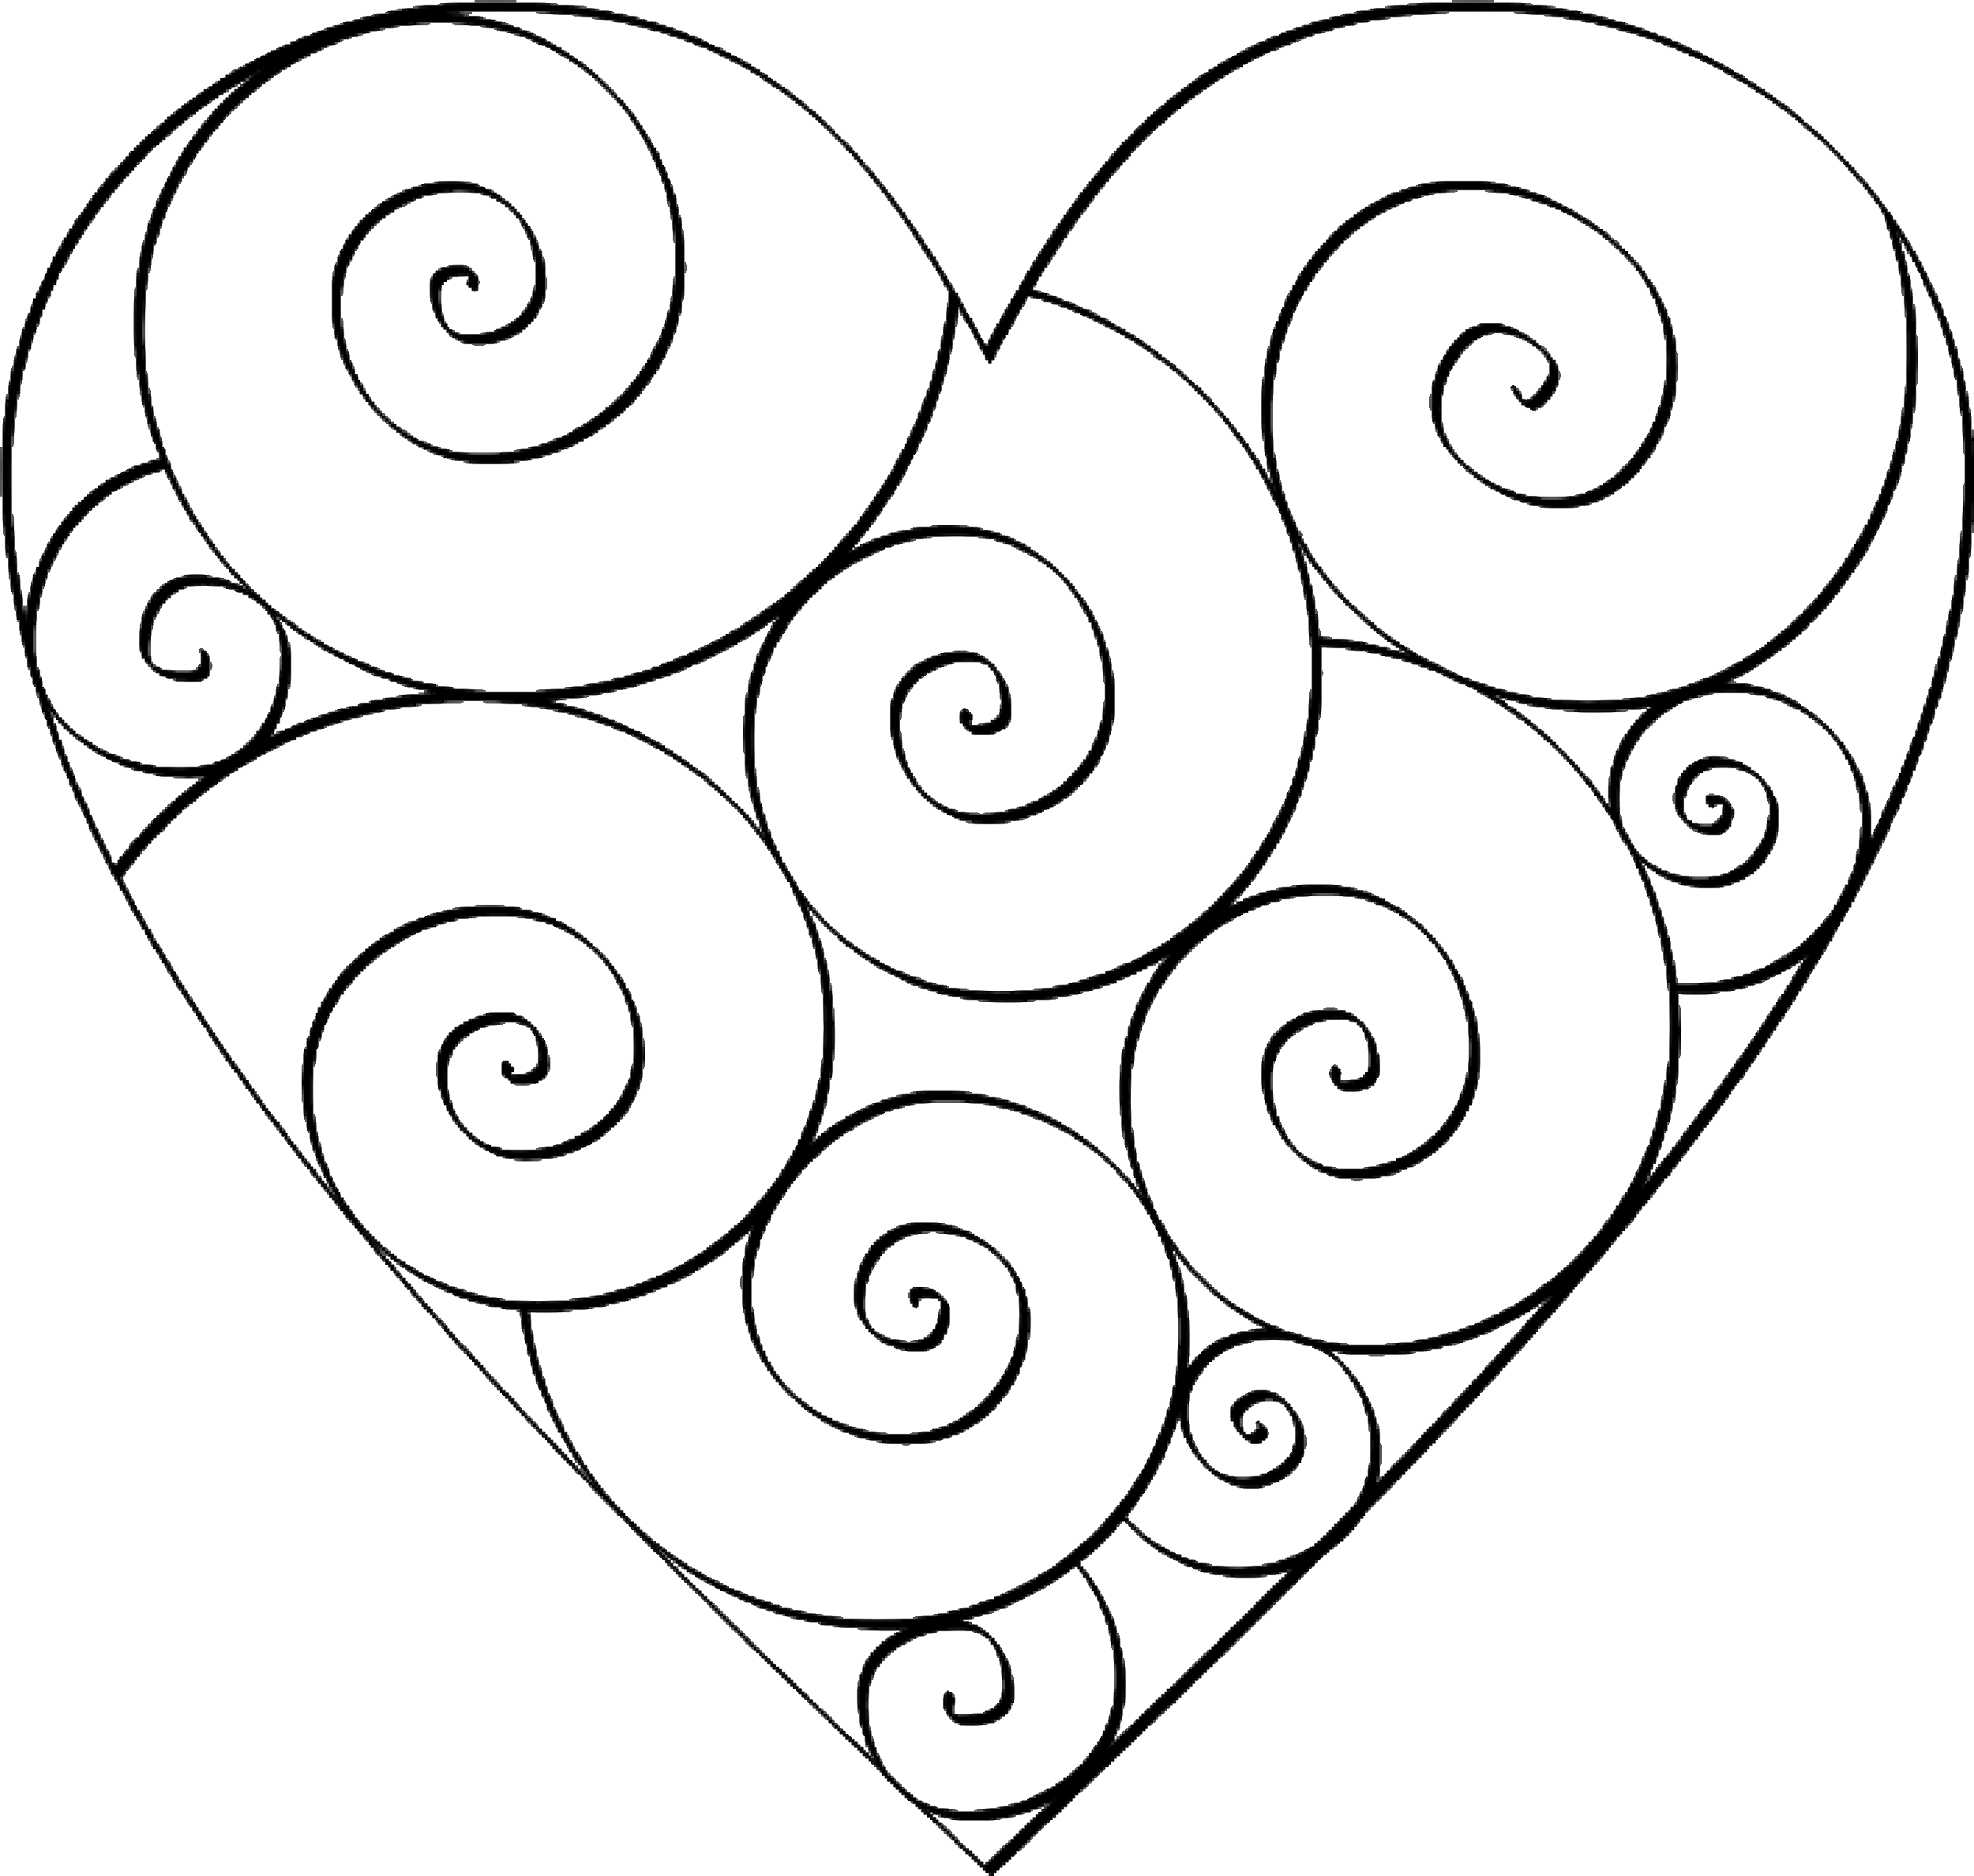 coloring pages heart shape printable heart shape coloring pages like success pages coloring shape heart